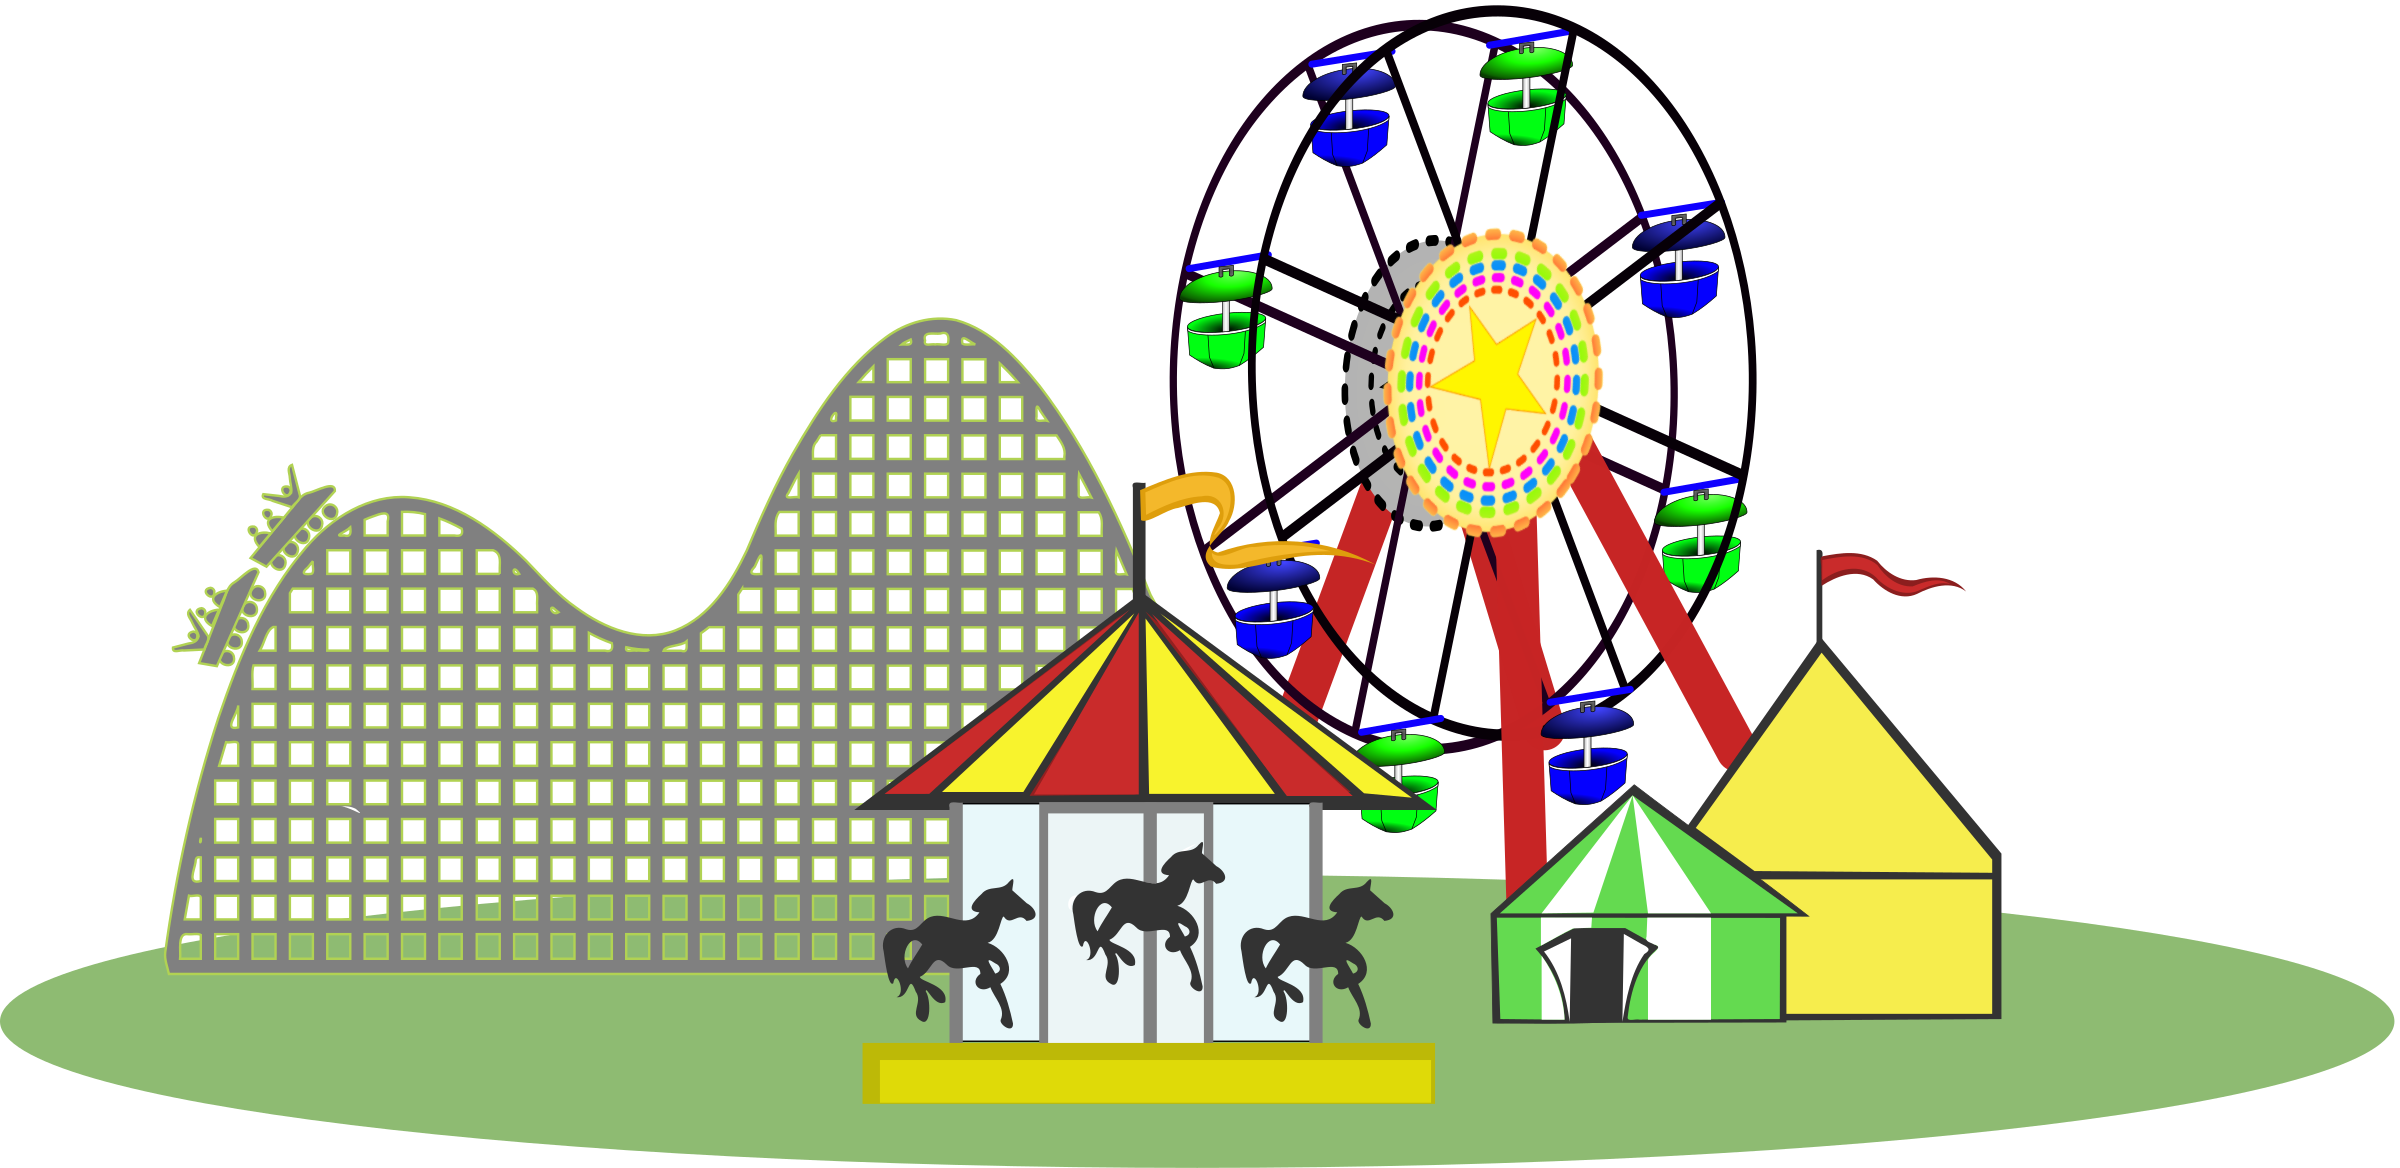 Remix of carnival color. Circus clipart fair